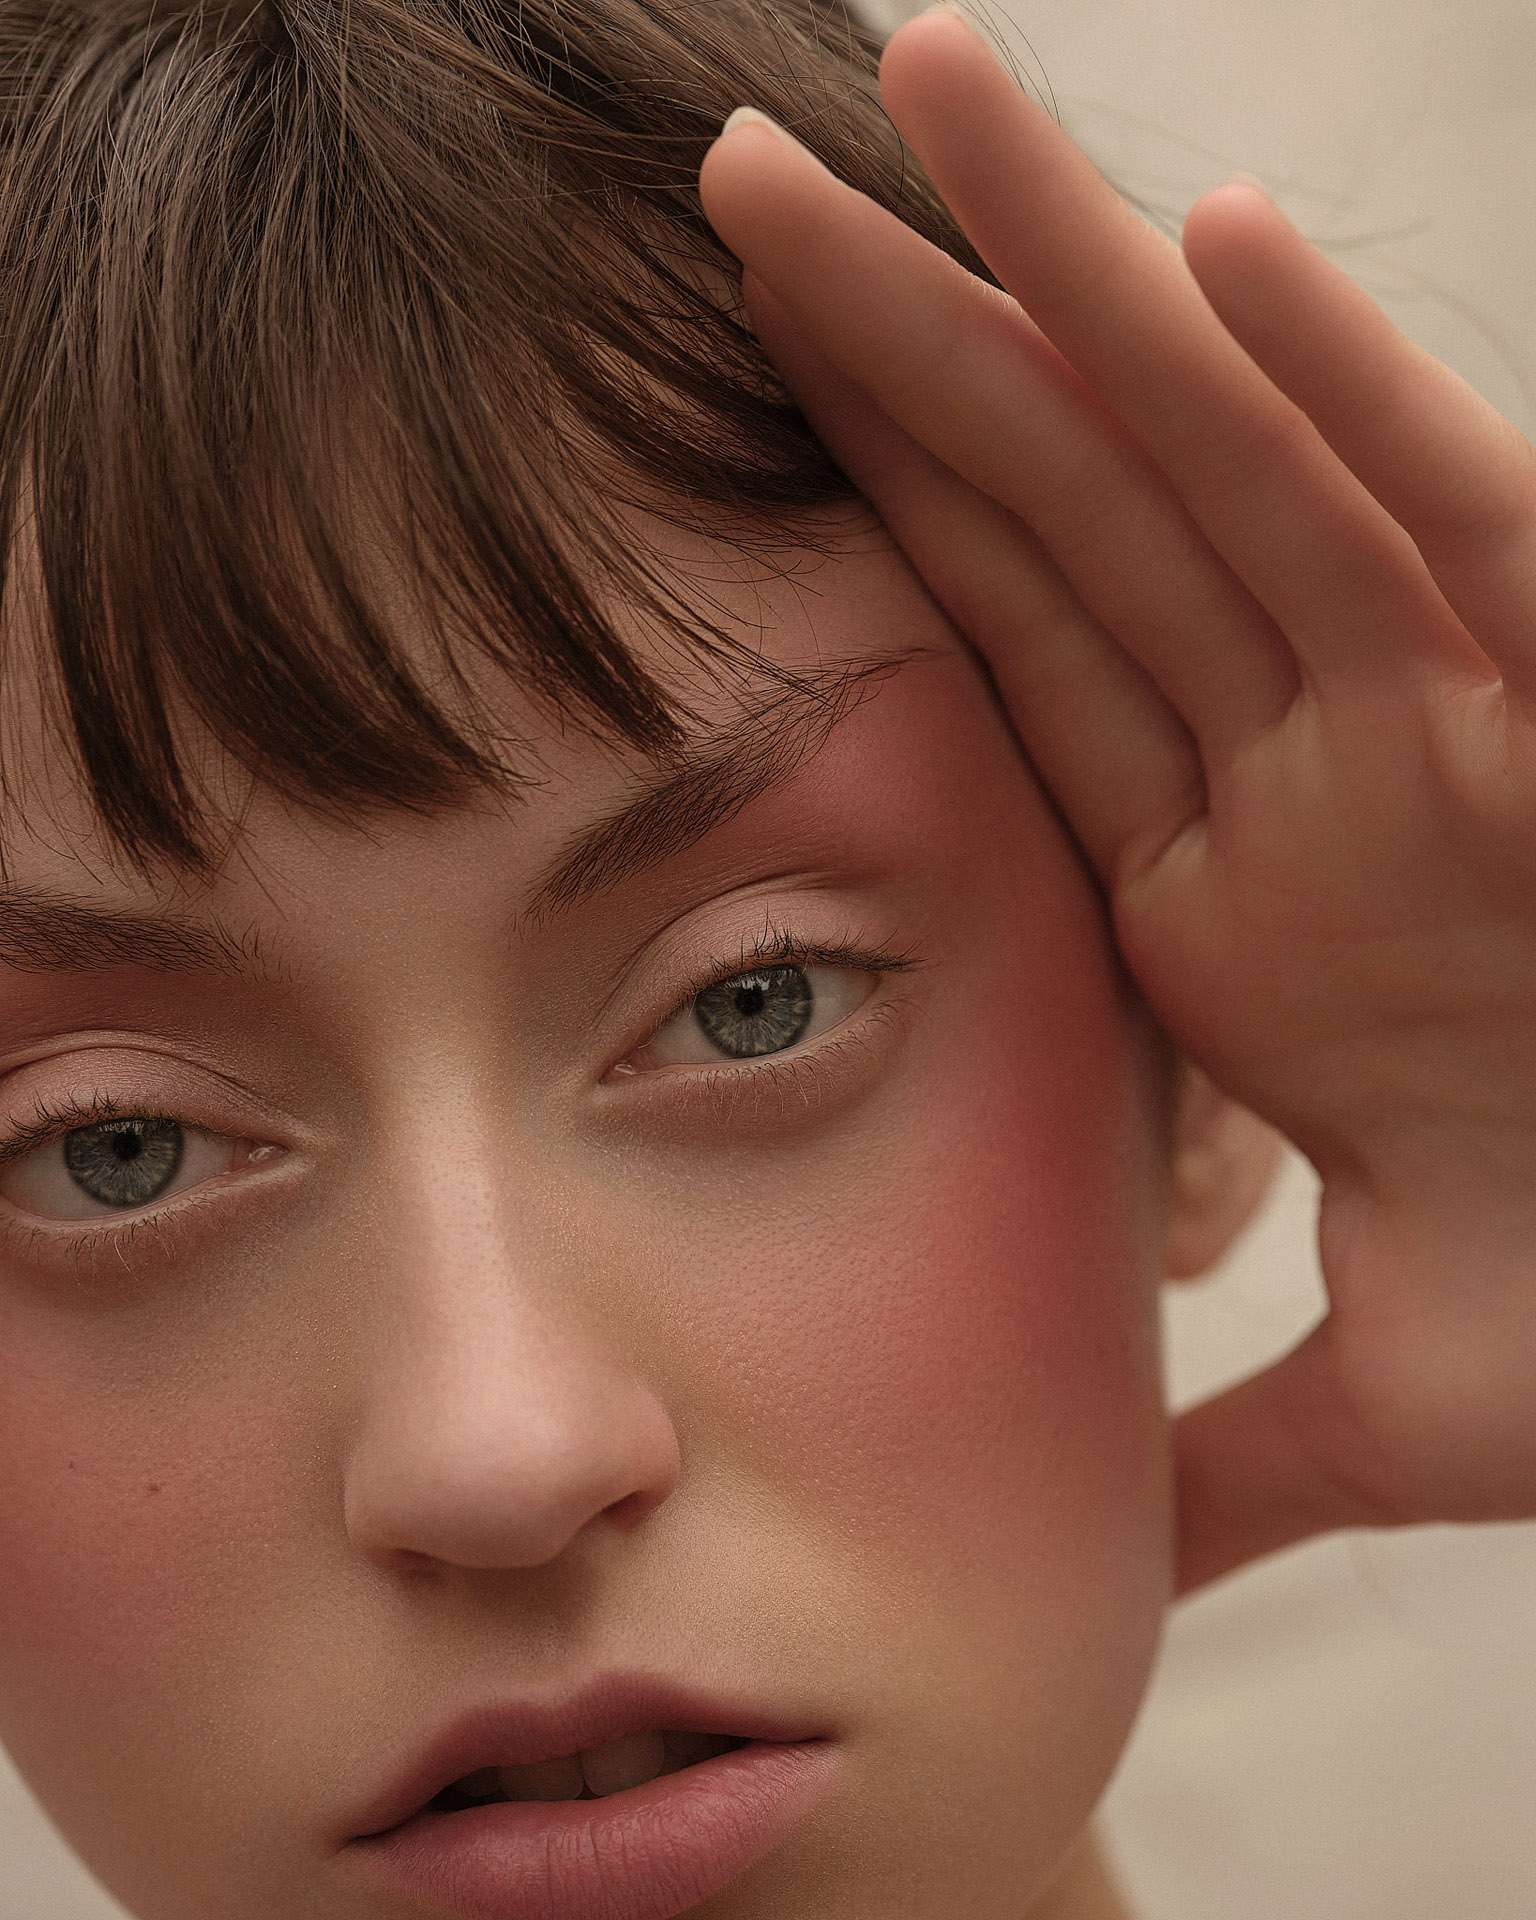 model Delphine with pink cheek by Maxyme G Delisle for Flanelle Magazine